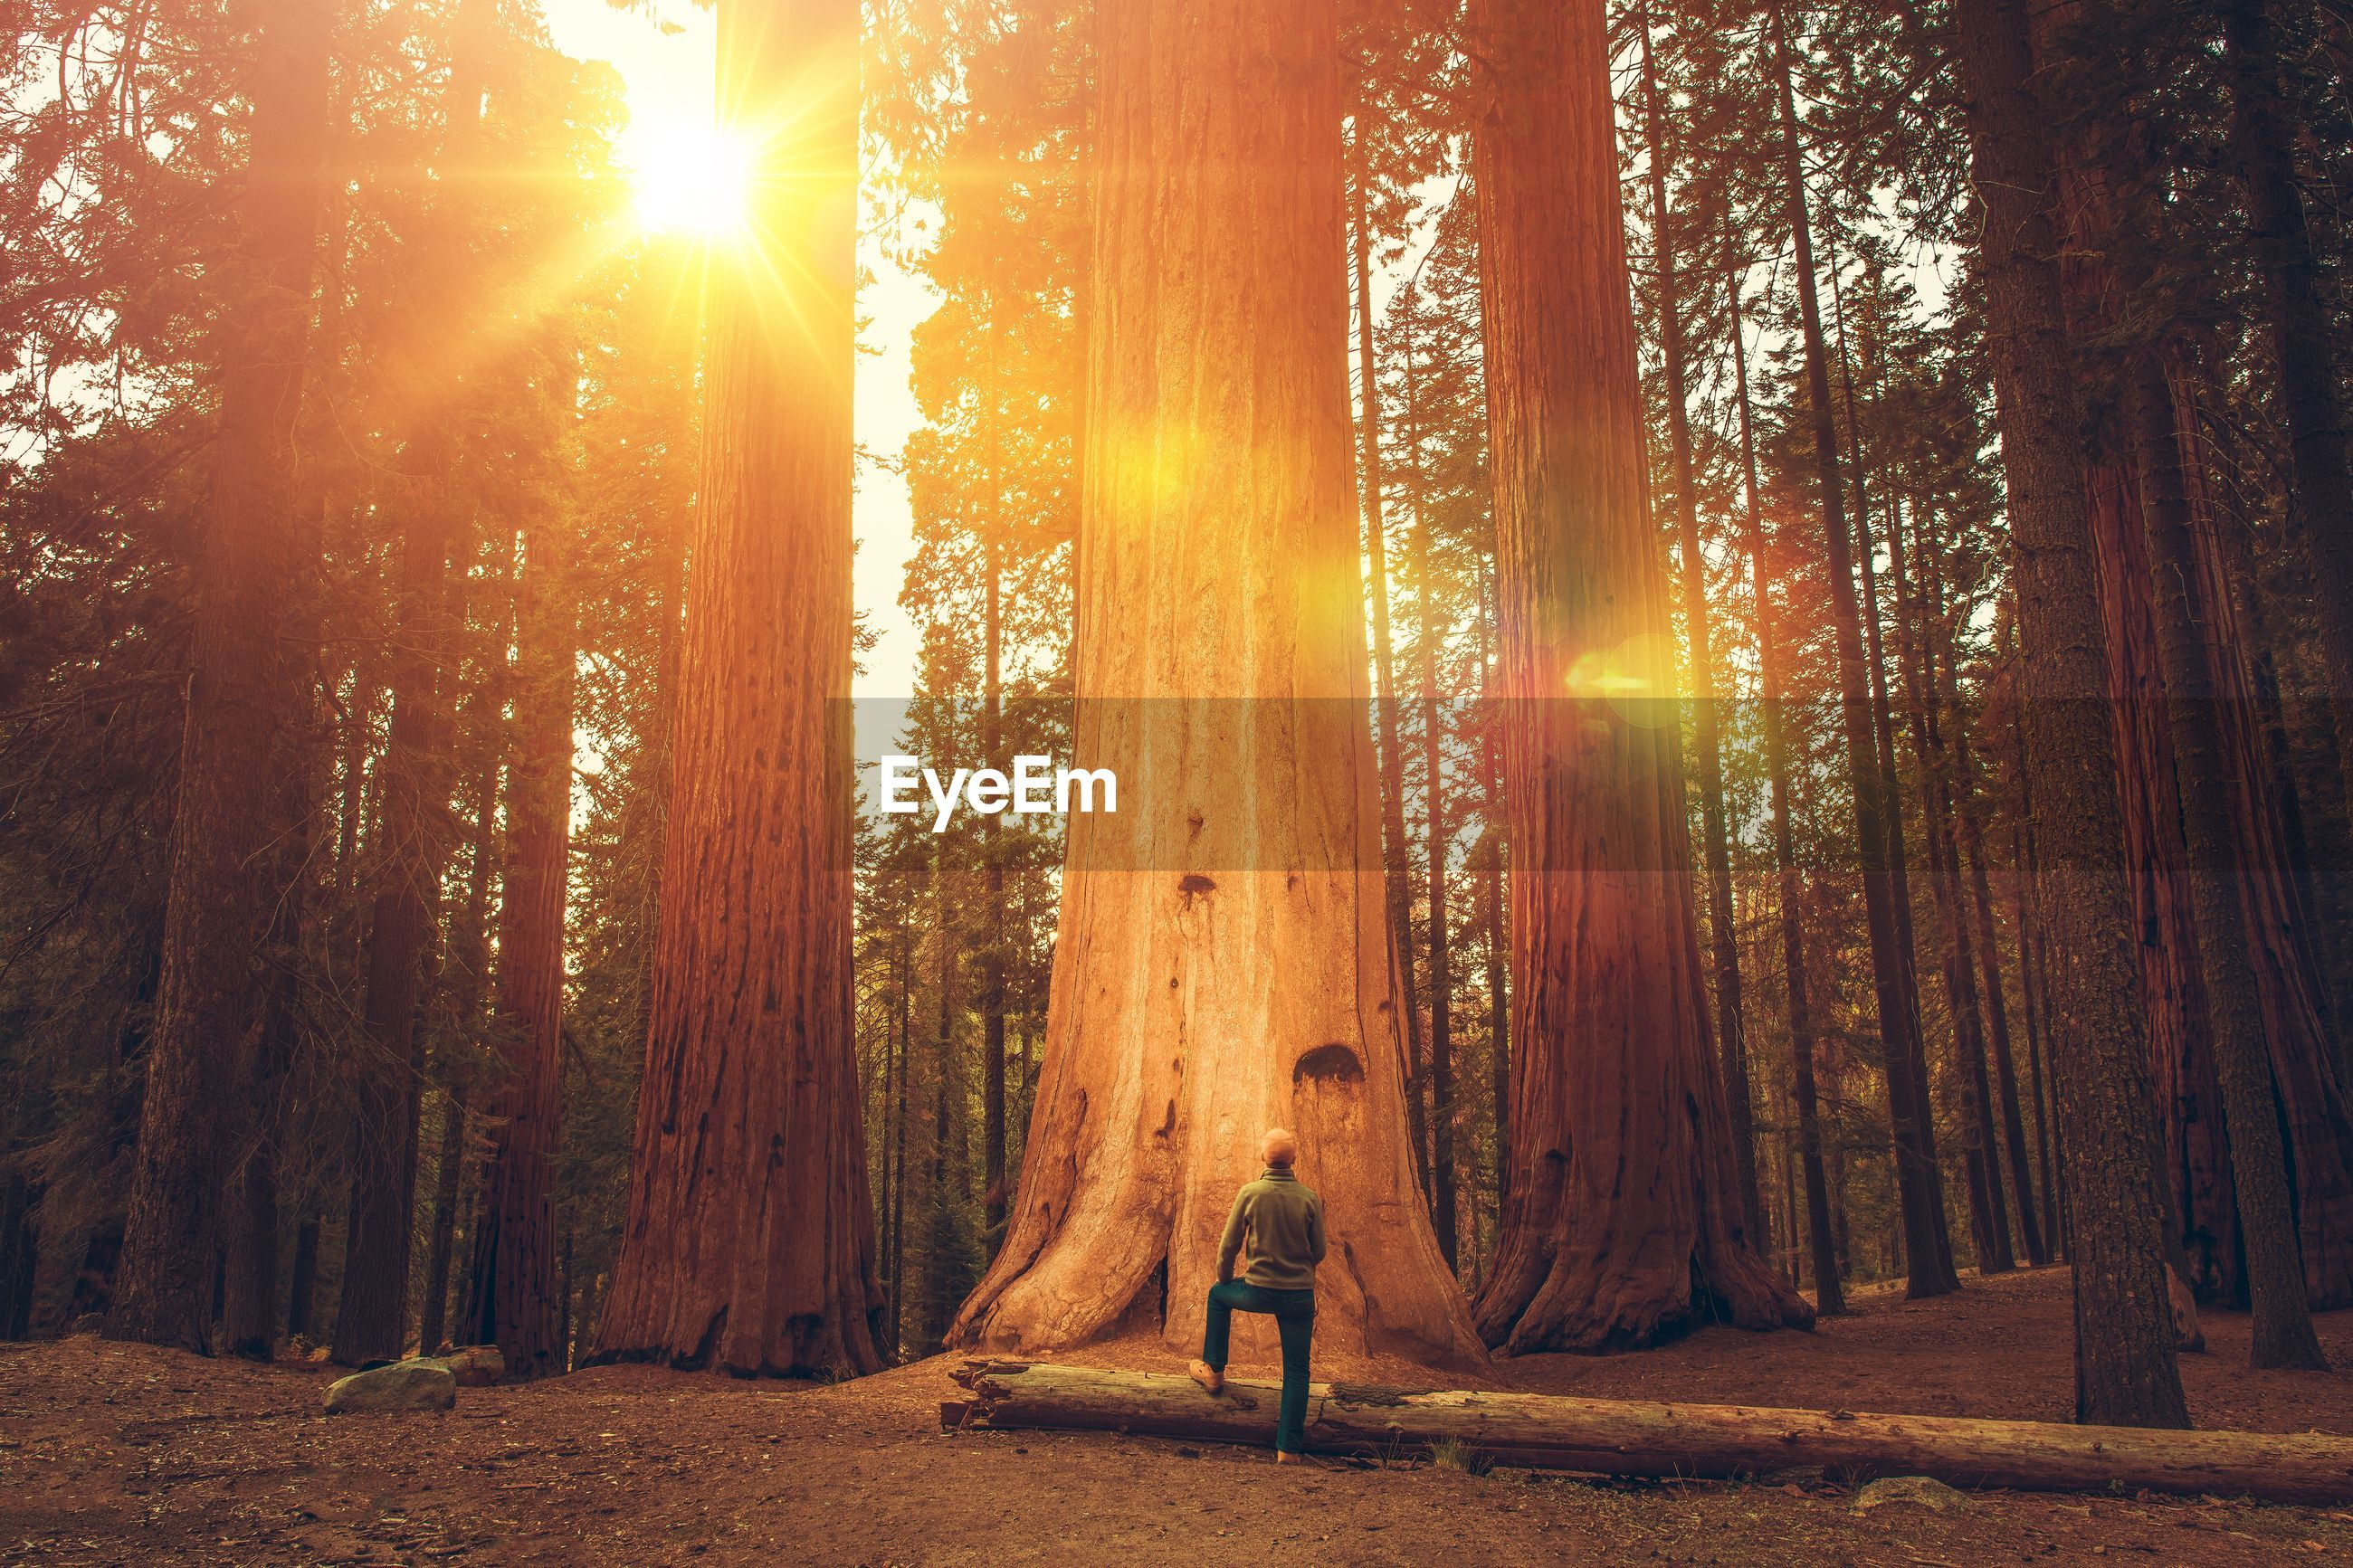 Man standing by tree in forest during sunny day